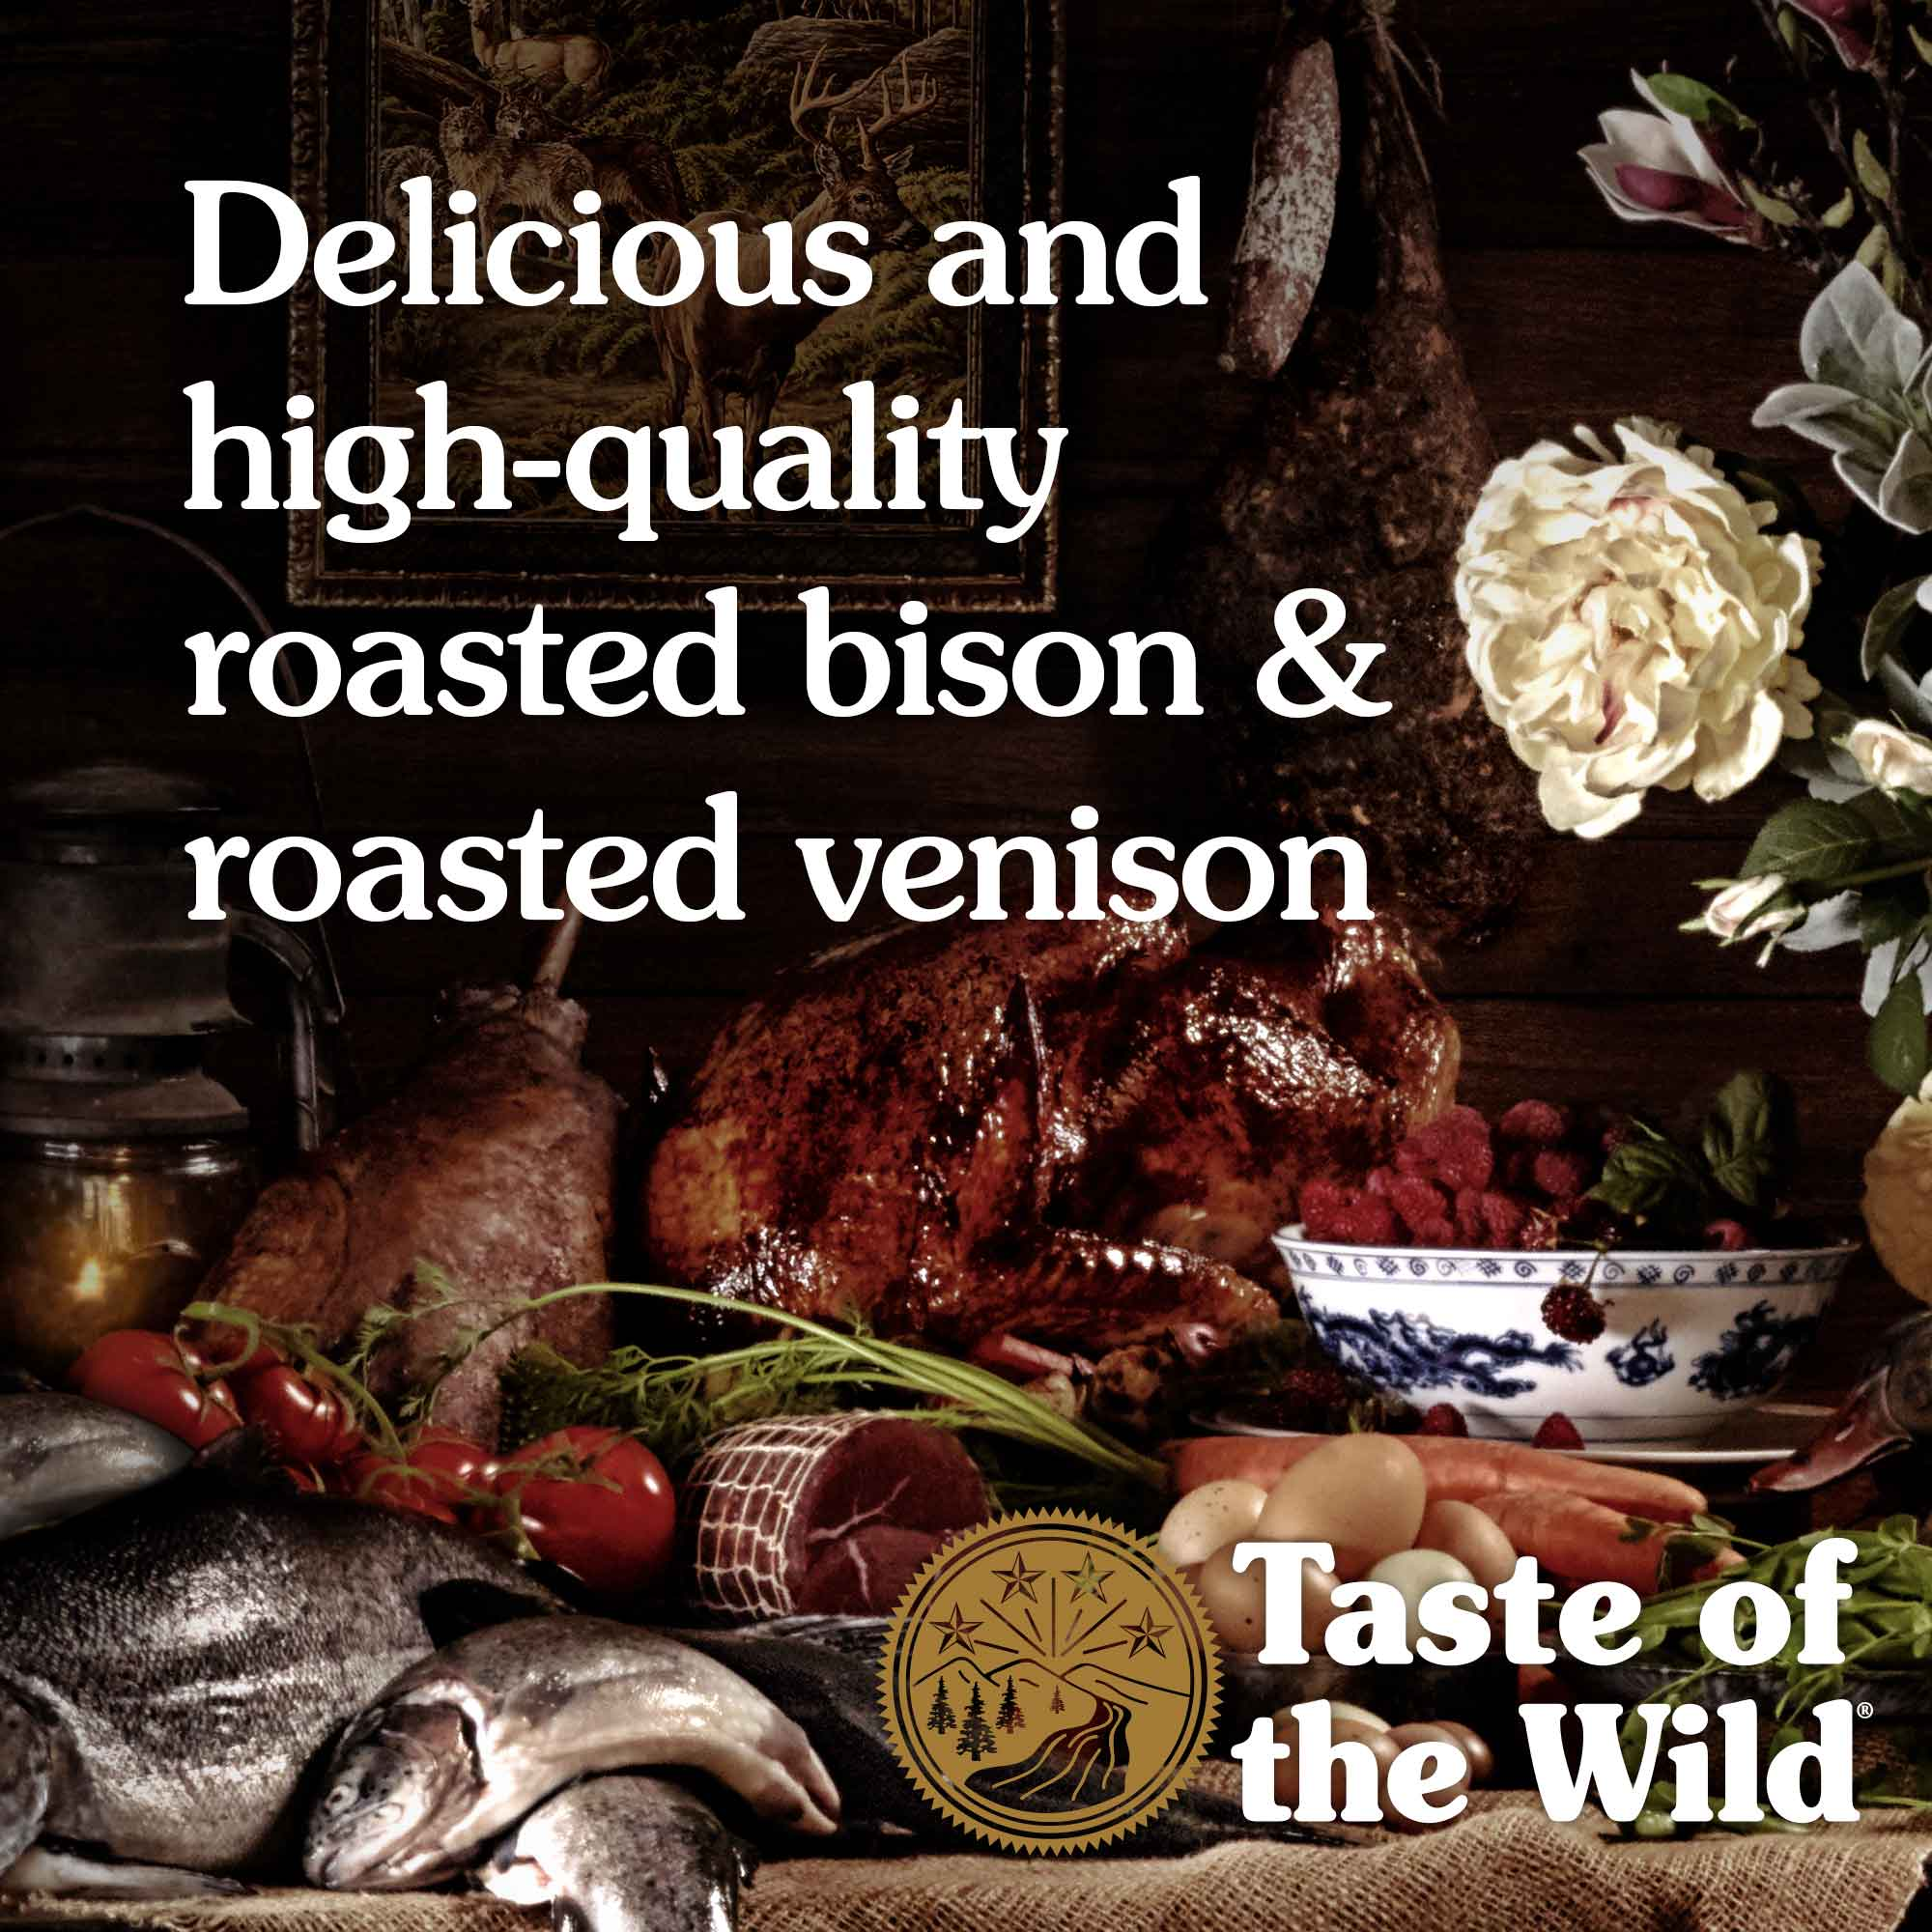 Delicious and high-quality roasted bison & roasted venison